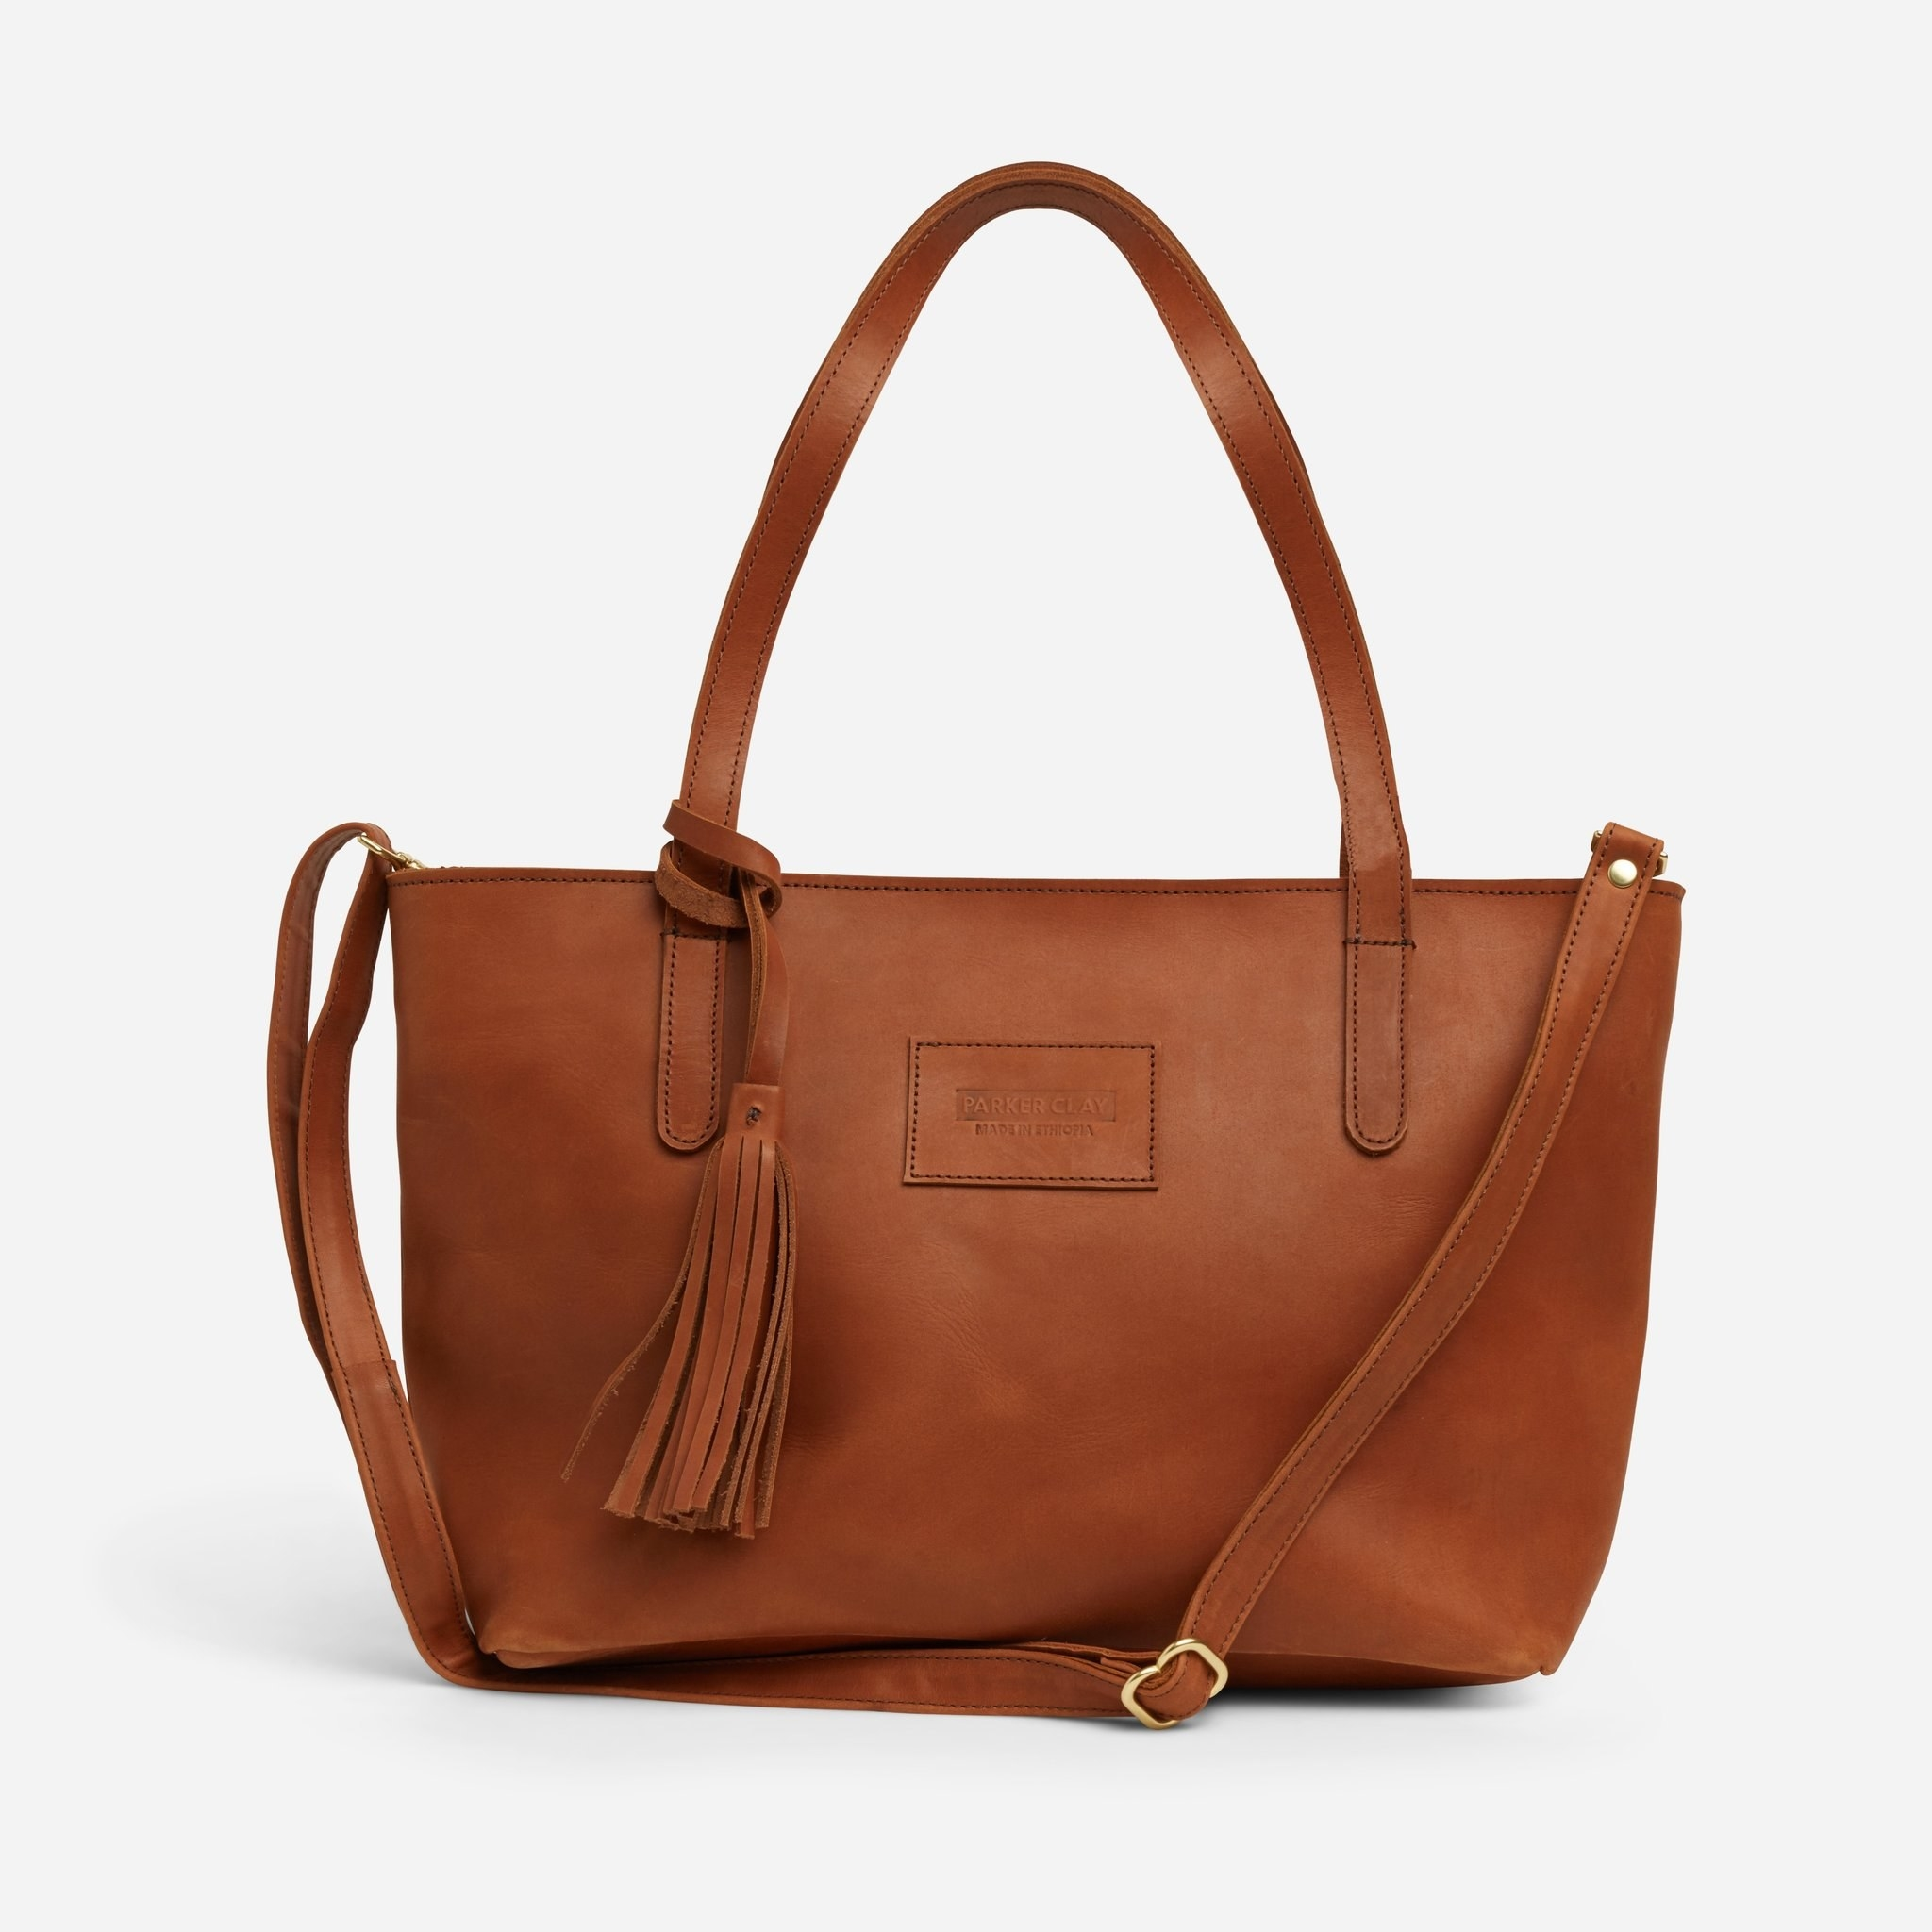 cognac brown tote bag with a crossbody strap and fringe accent